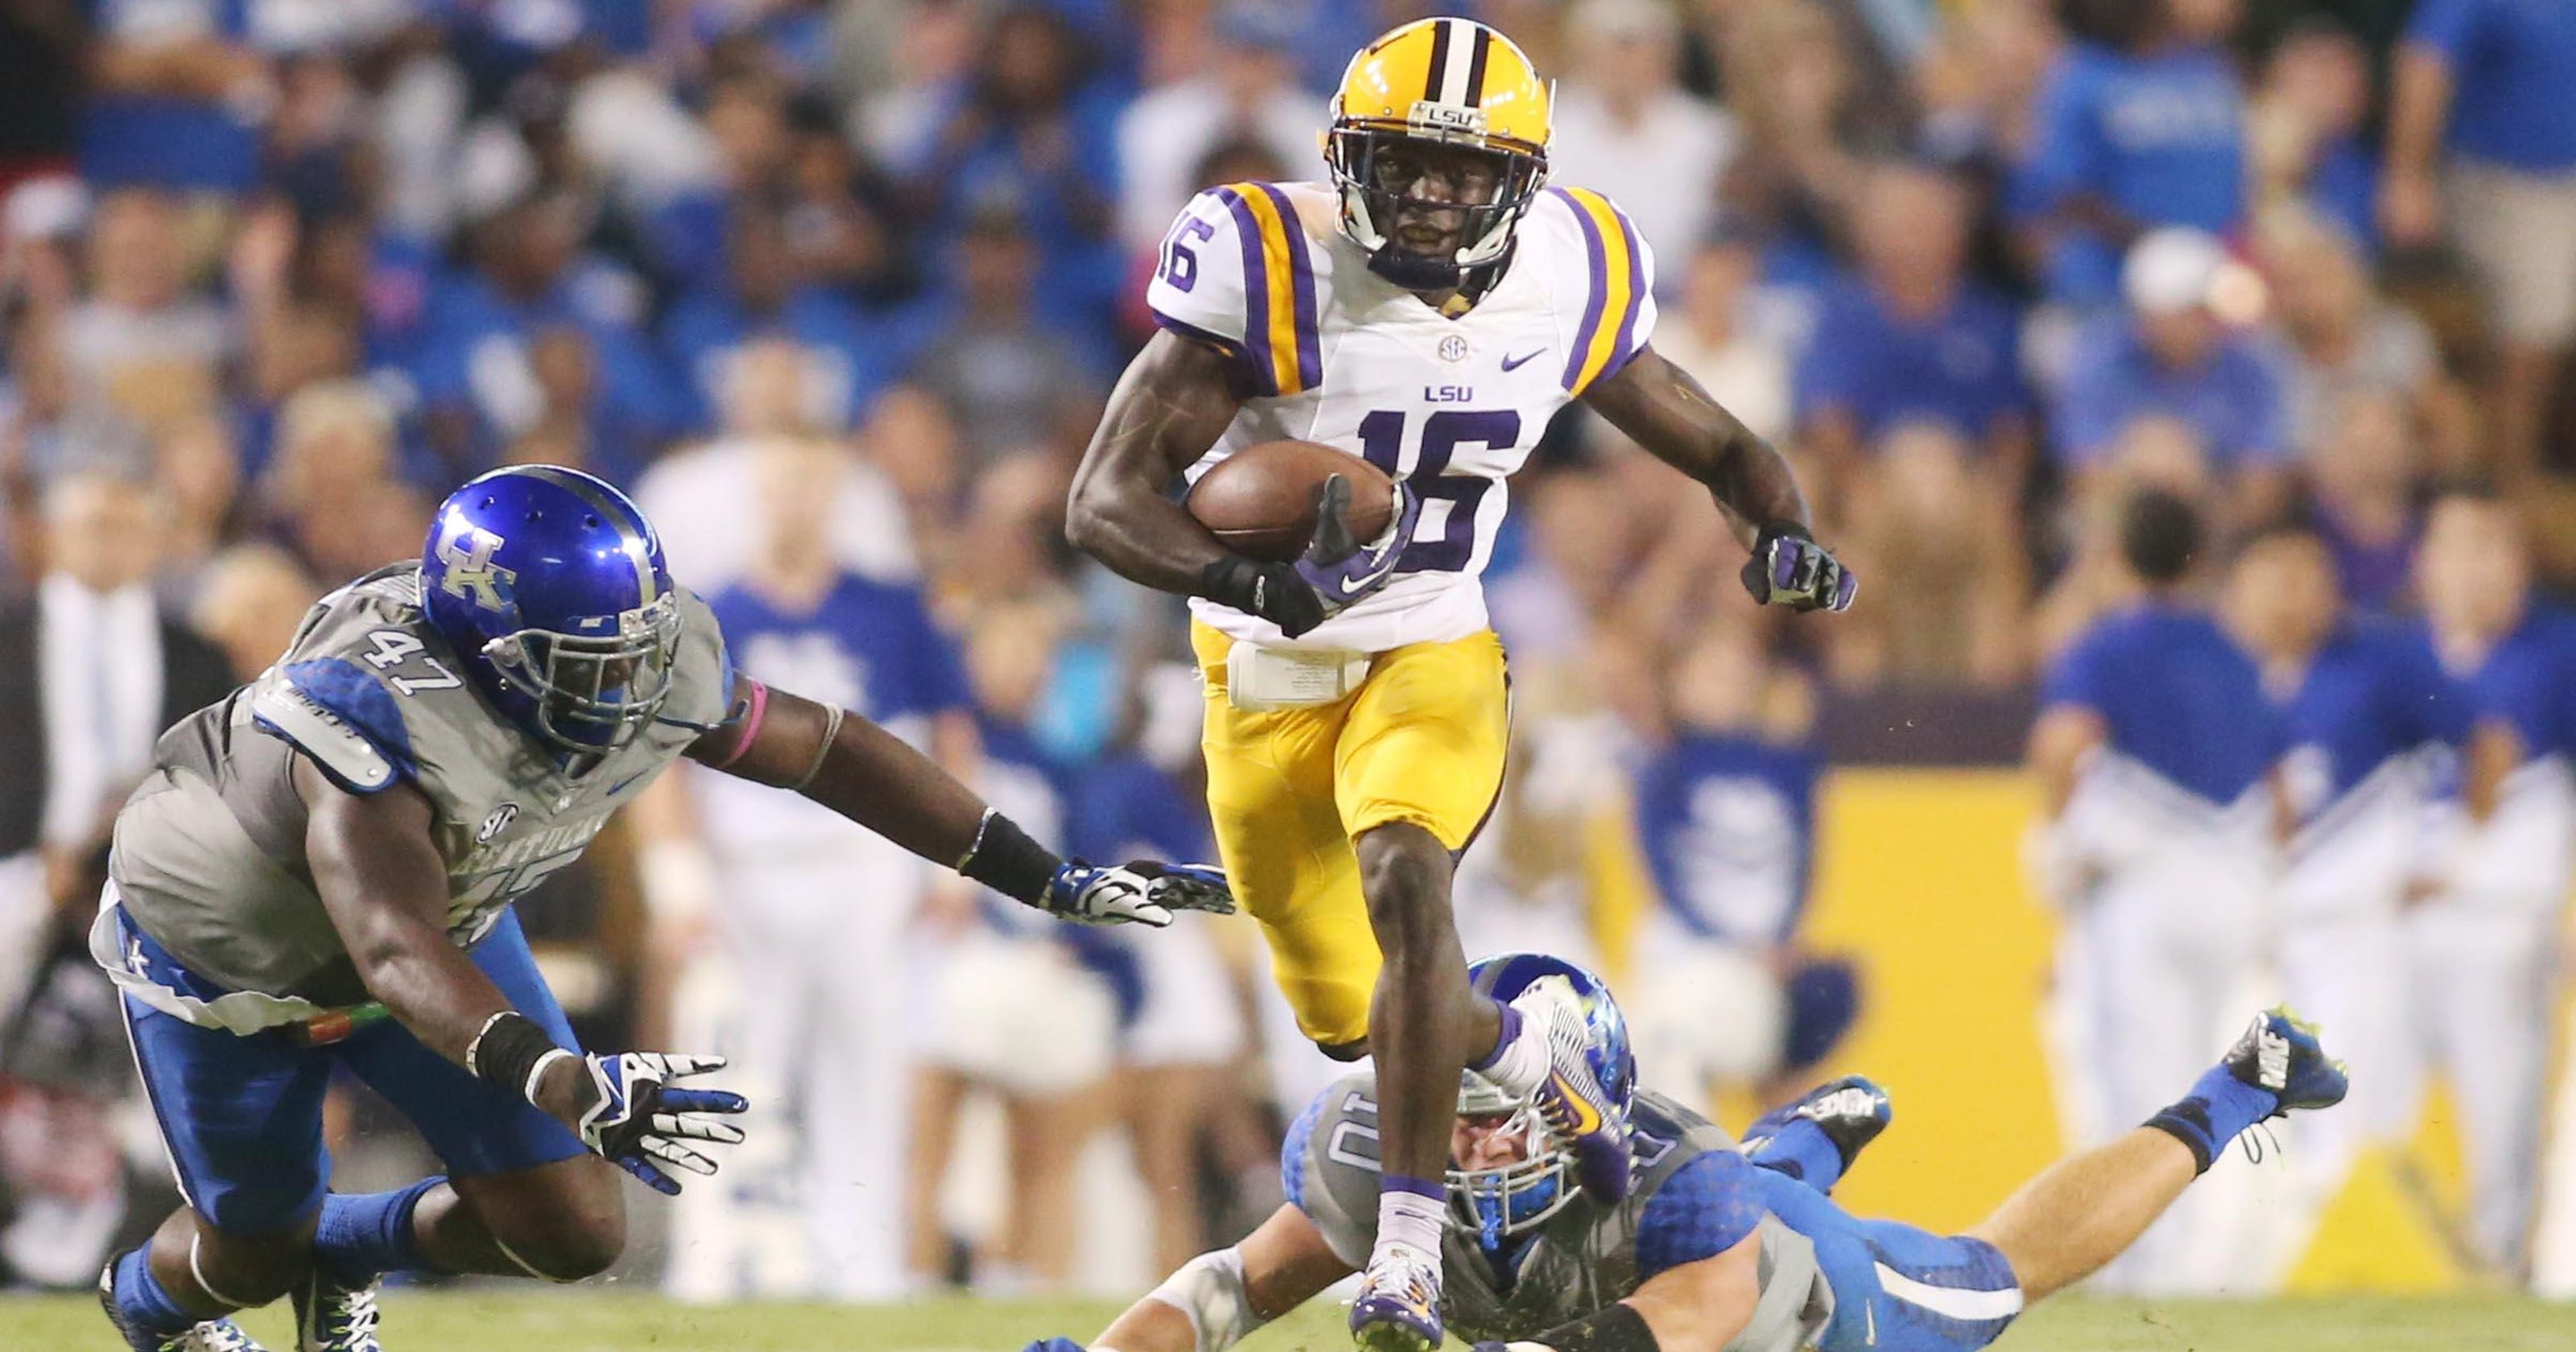 Tre Davious White proud to wear LSU s coveted No. 18 5834c095f